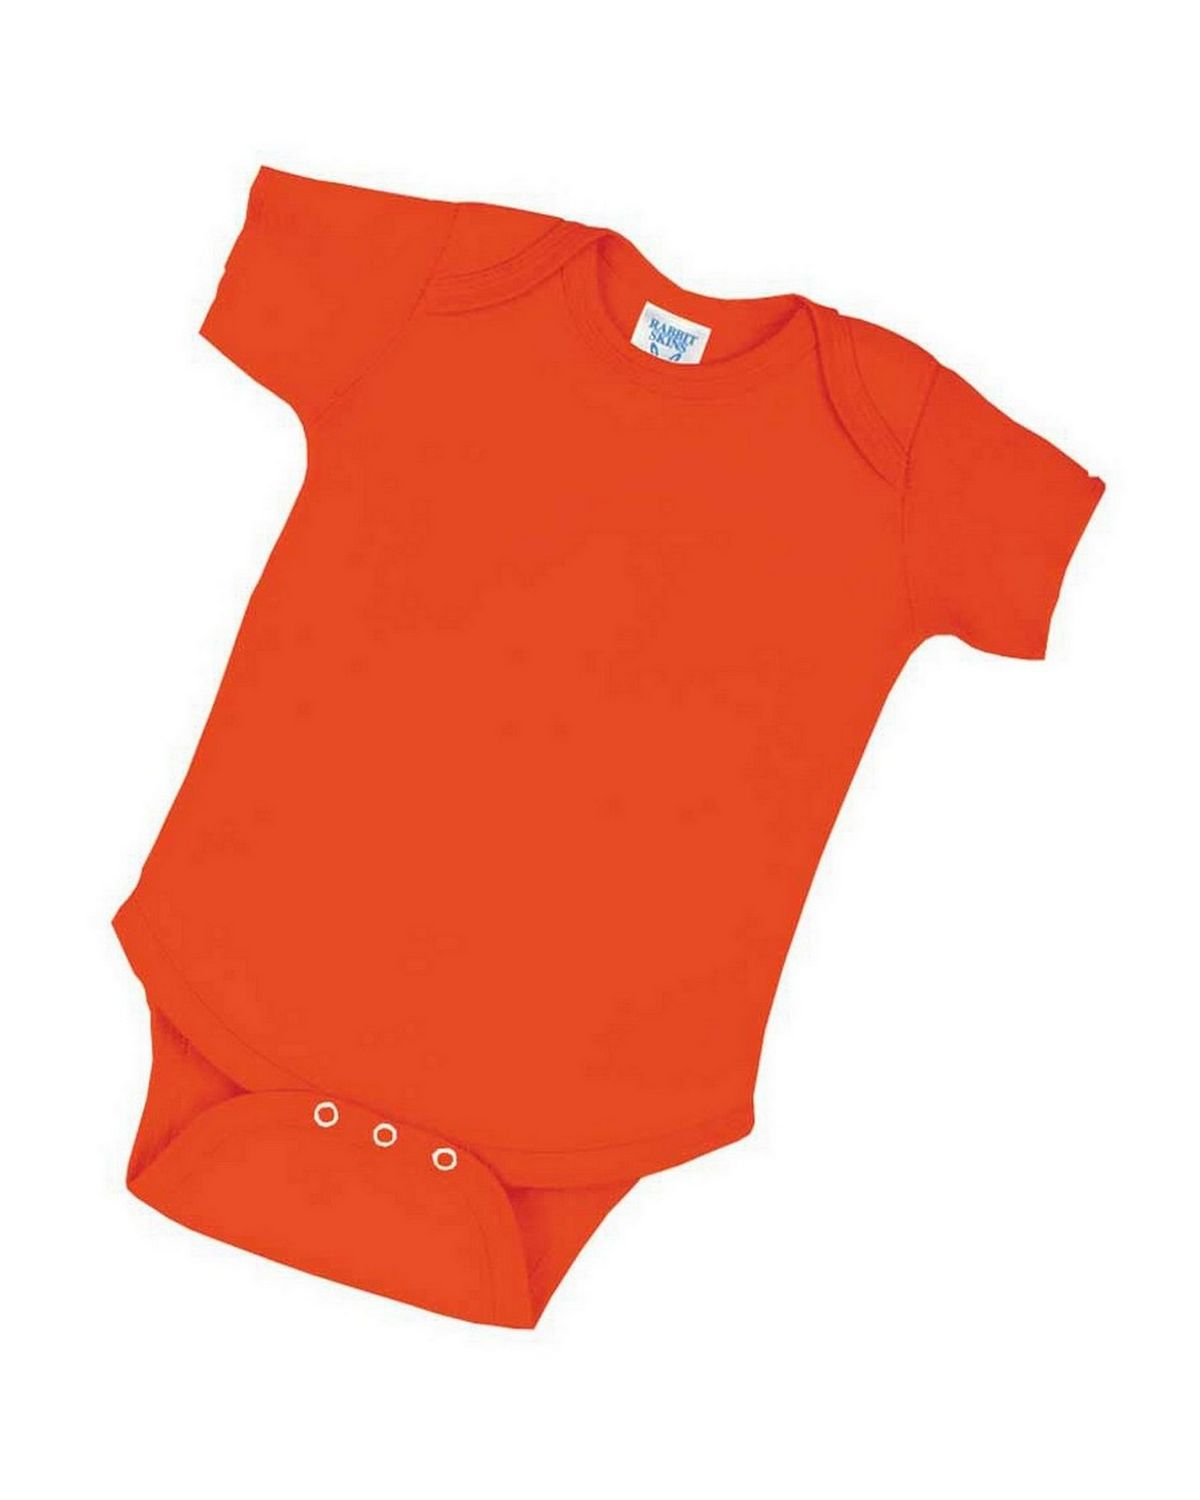 Rabbit Skins 4400 Infant Lap Shoulder Creeper - Orange - 6M 4400